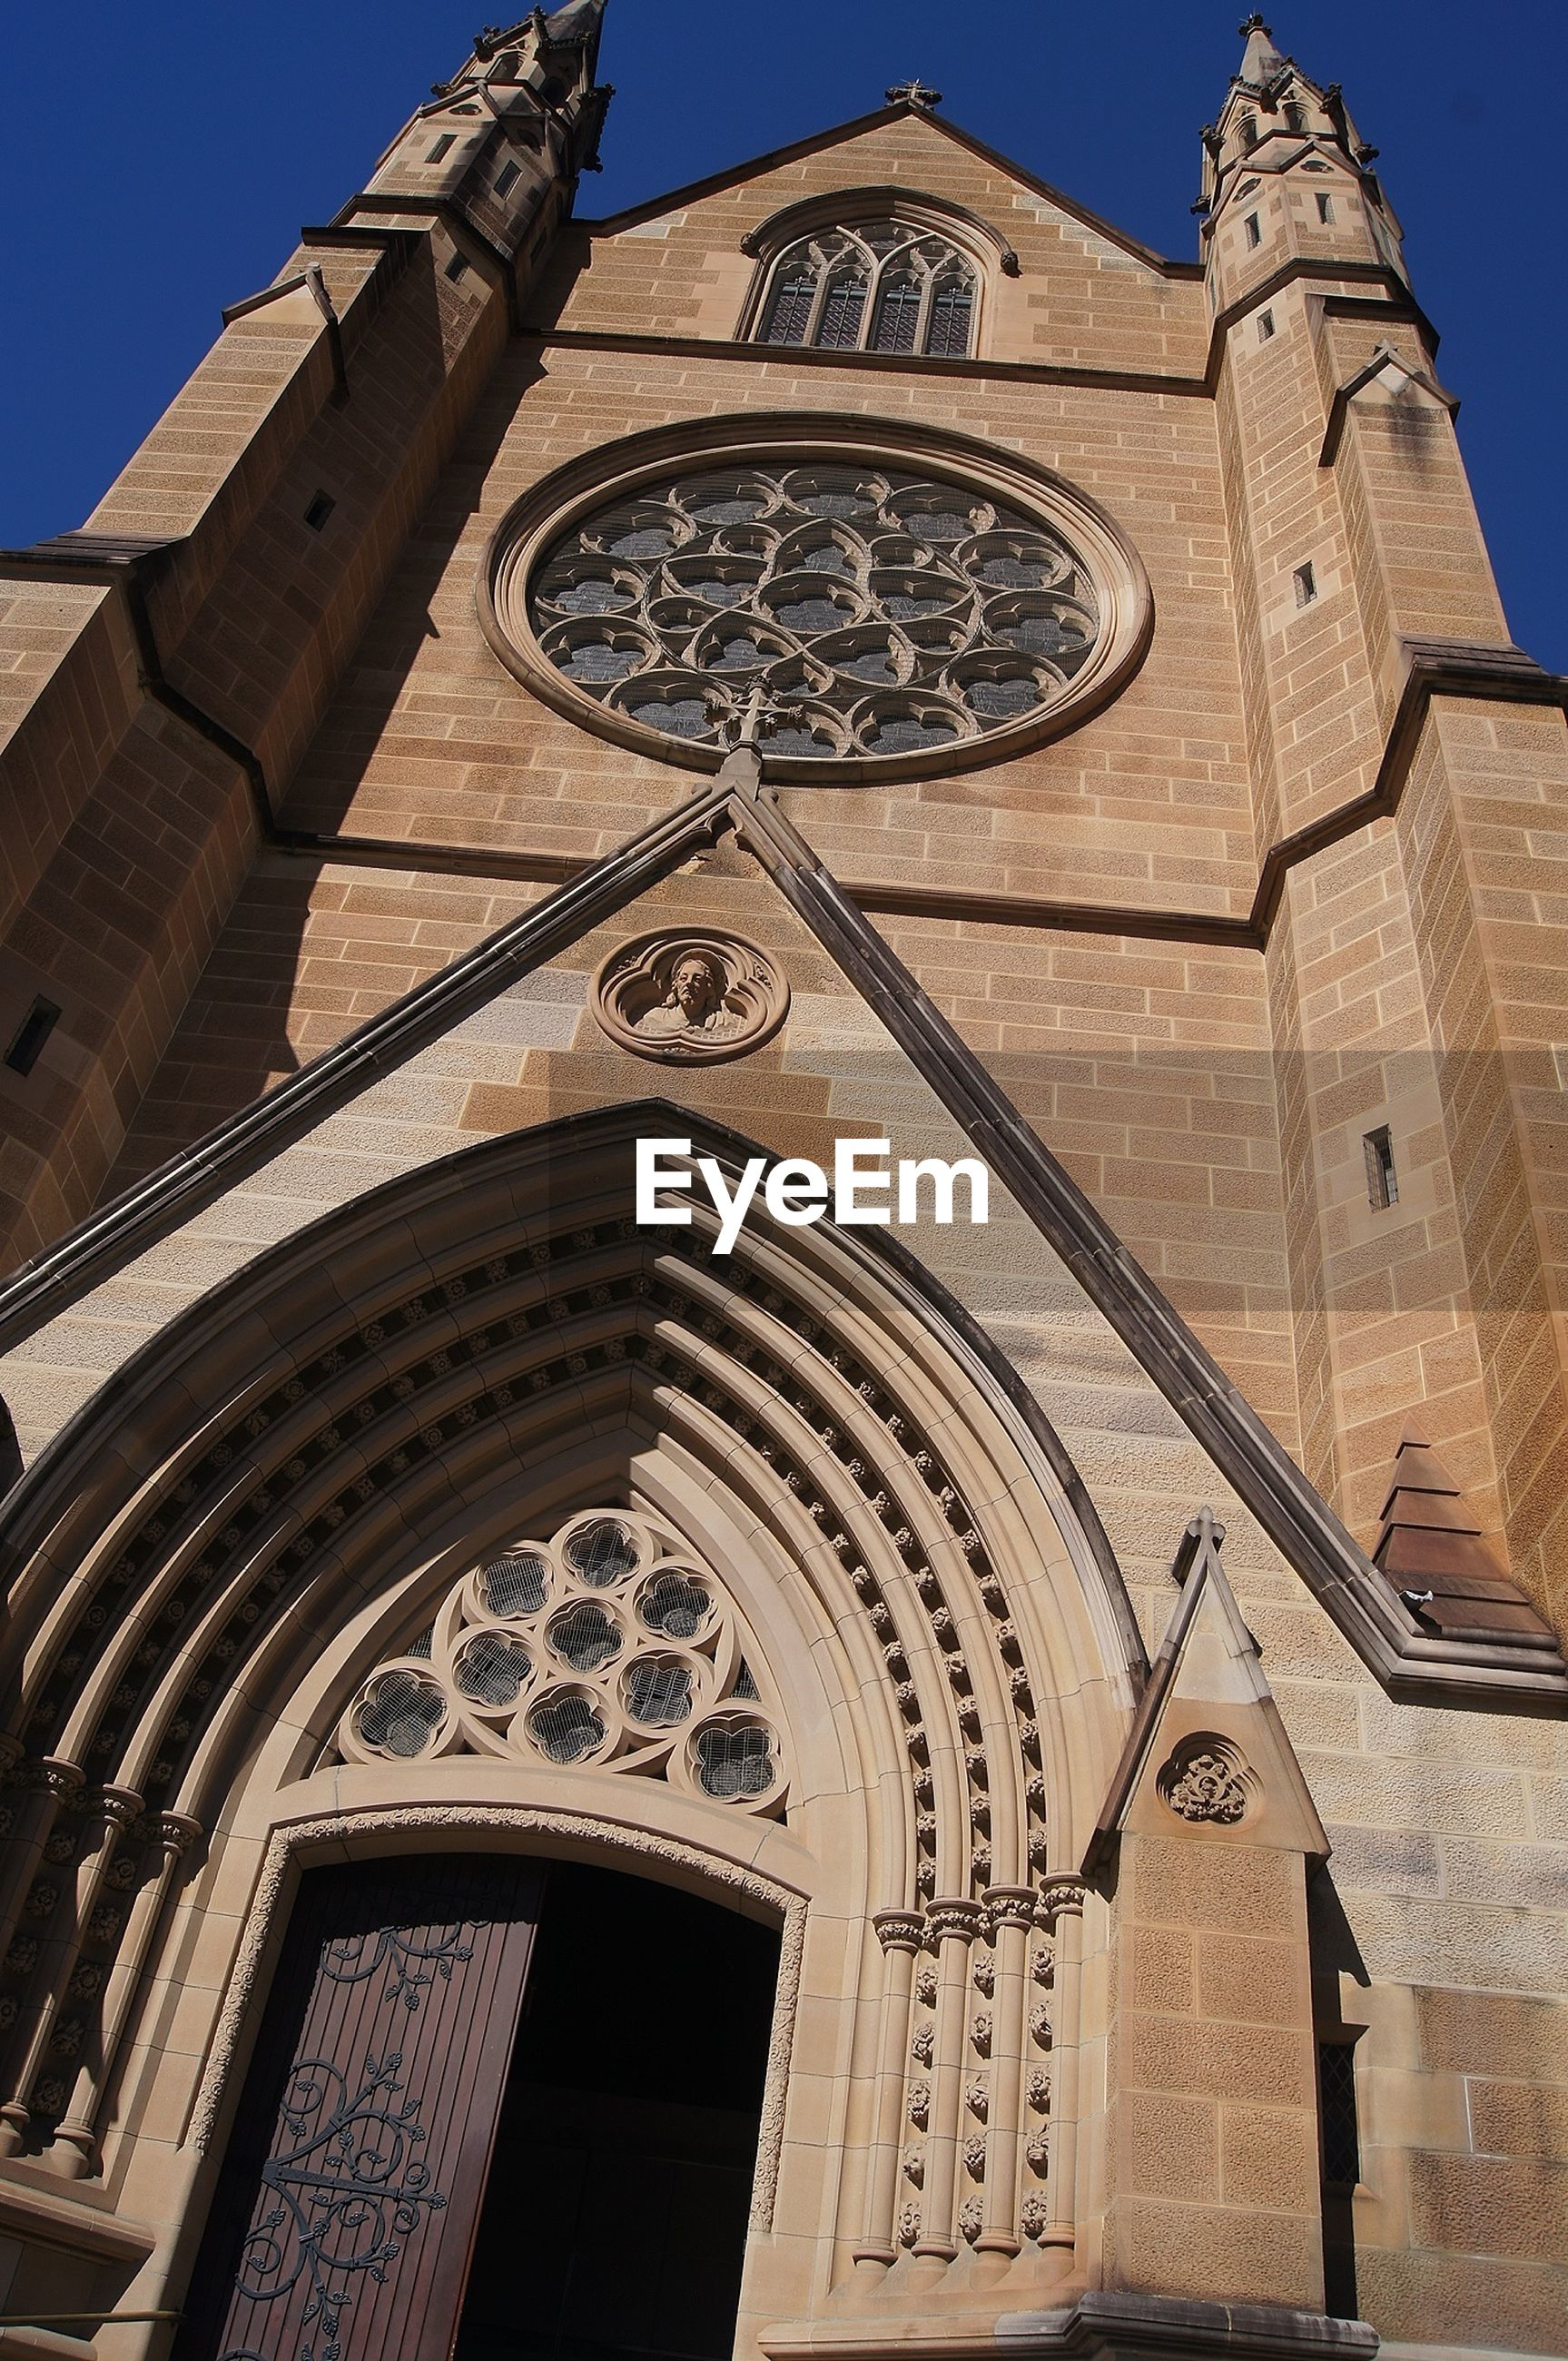 architecture, building exterior, low angle view, built structure, church, religion, clear sky, place of worship, spirituality, blue, history, facade, ornate, day, cross, arch, window, outdoors